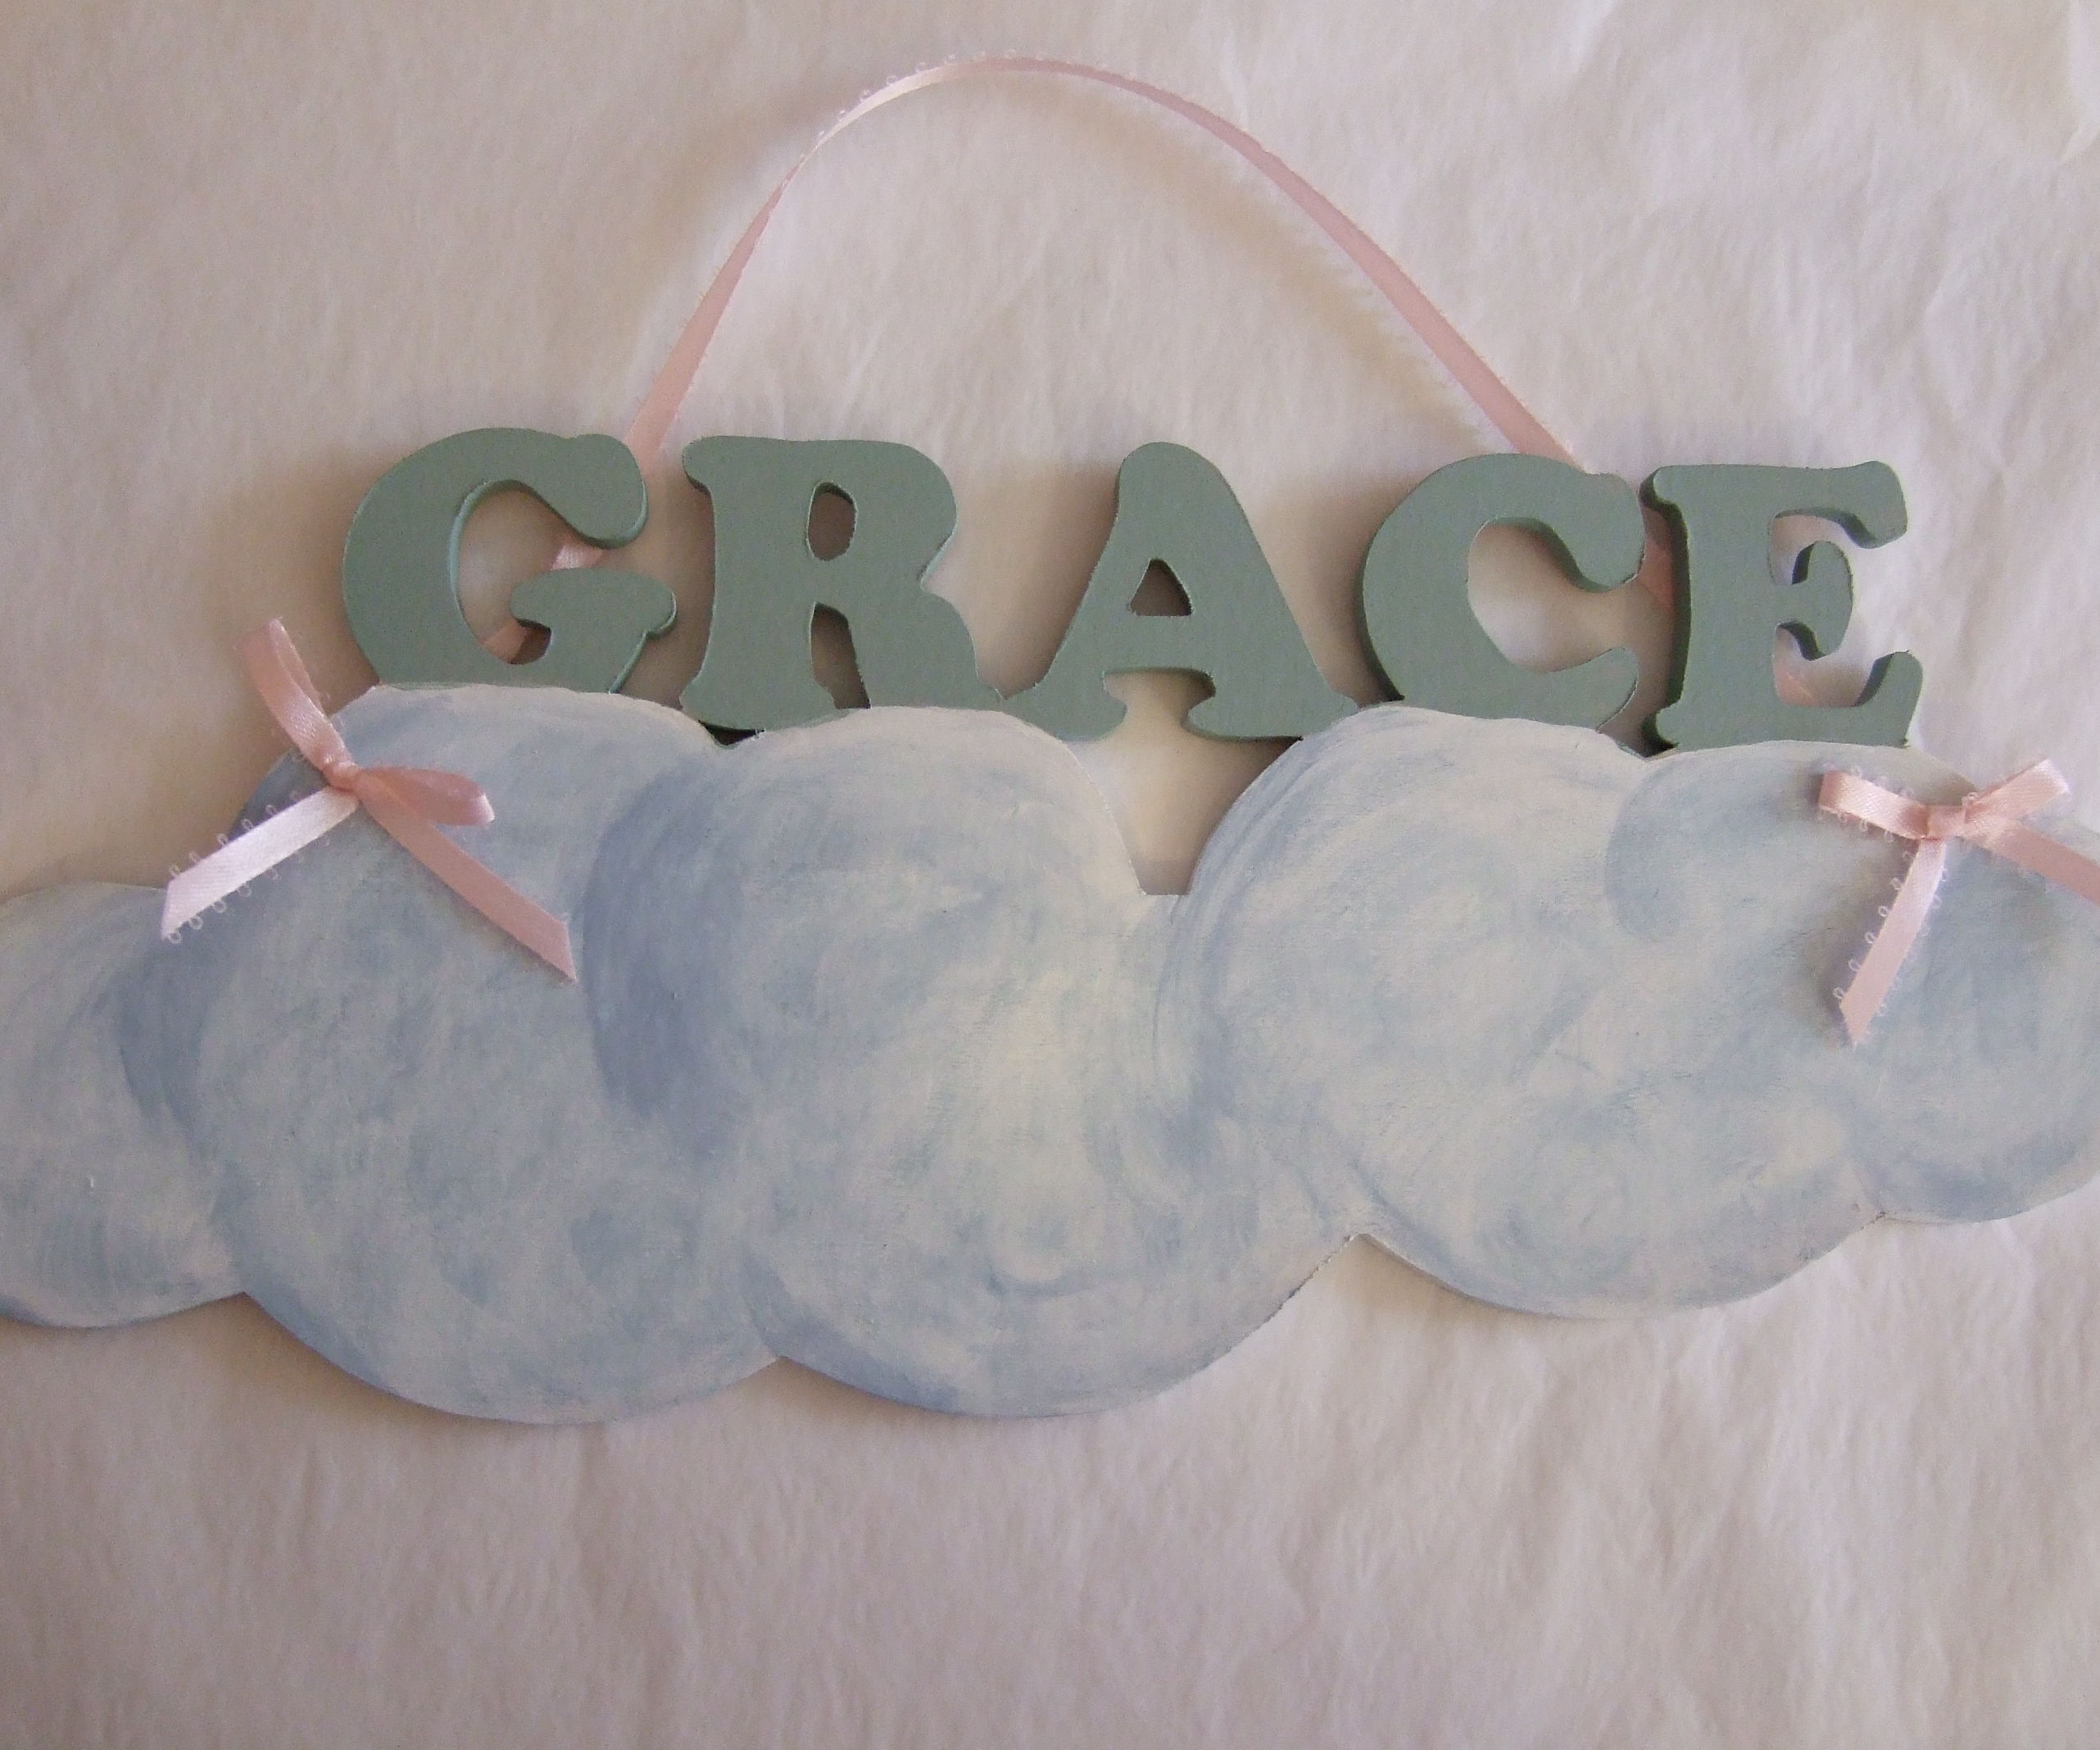 Creating Wooden Name Signs